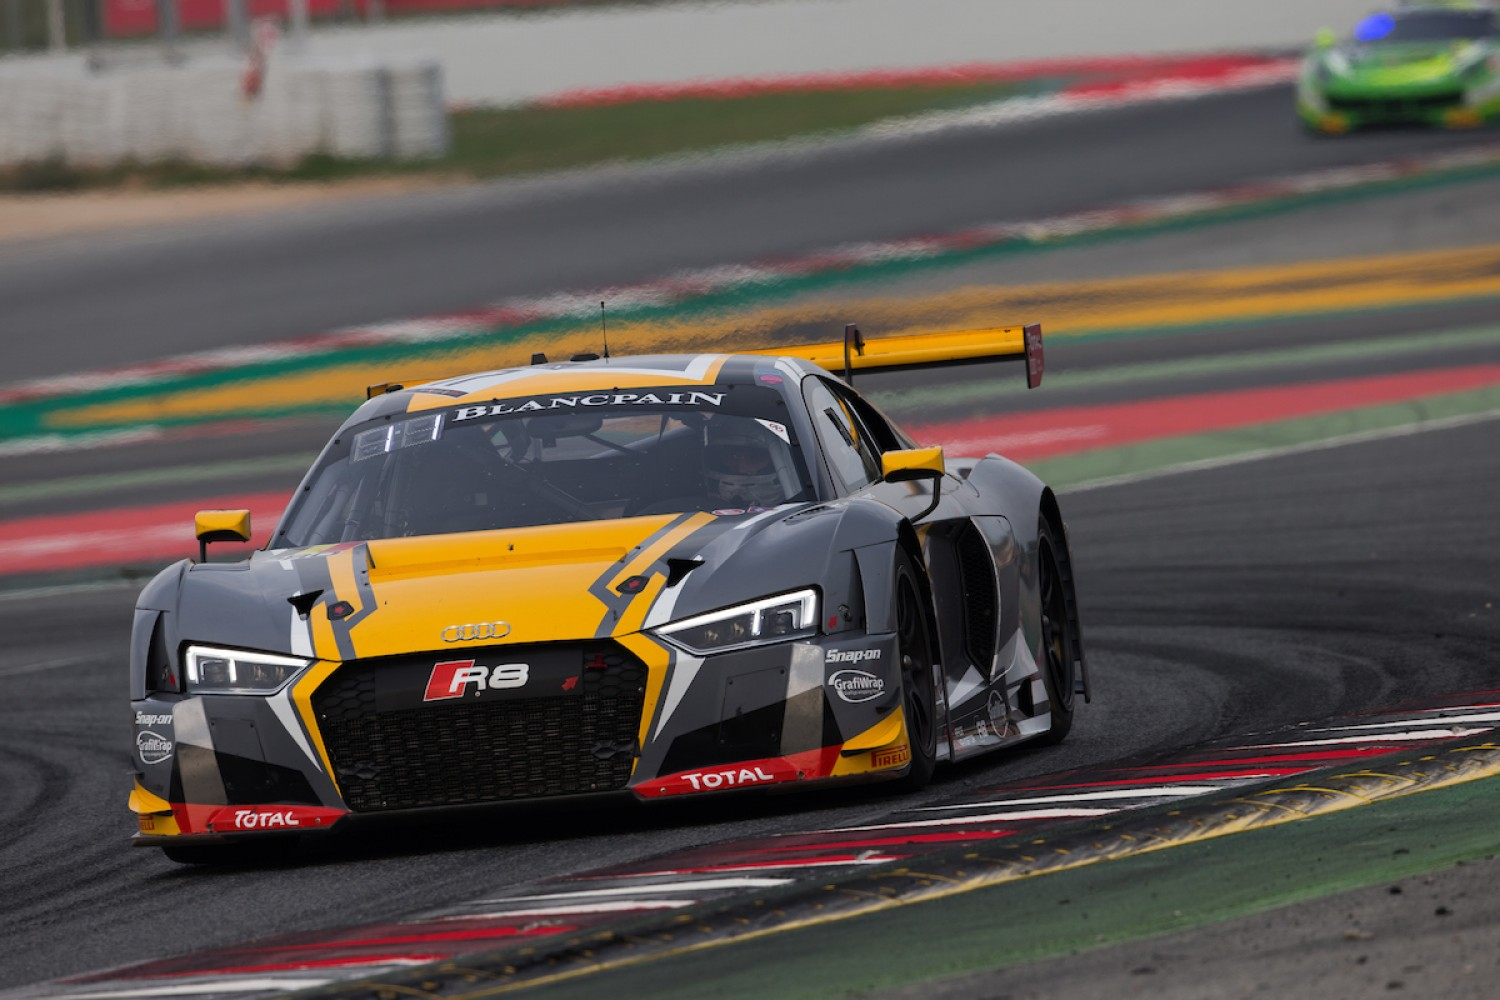 Robin Frijns takes pole position for the season finale